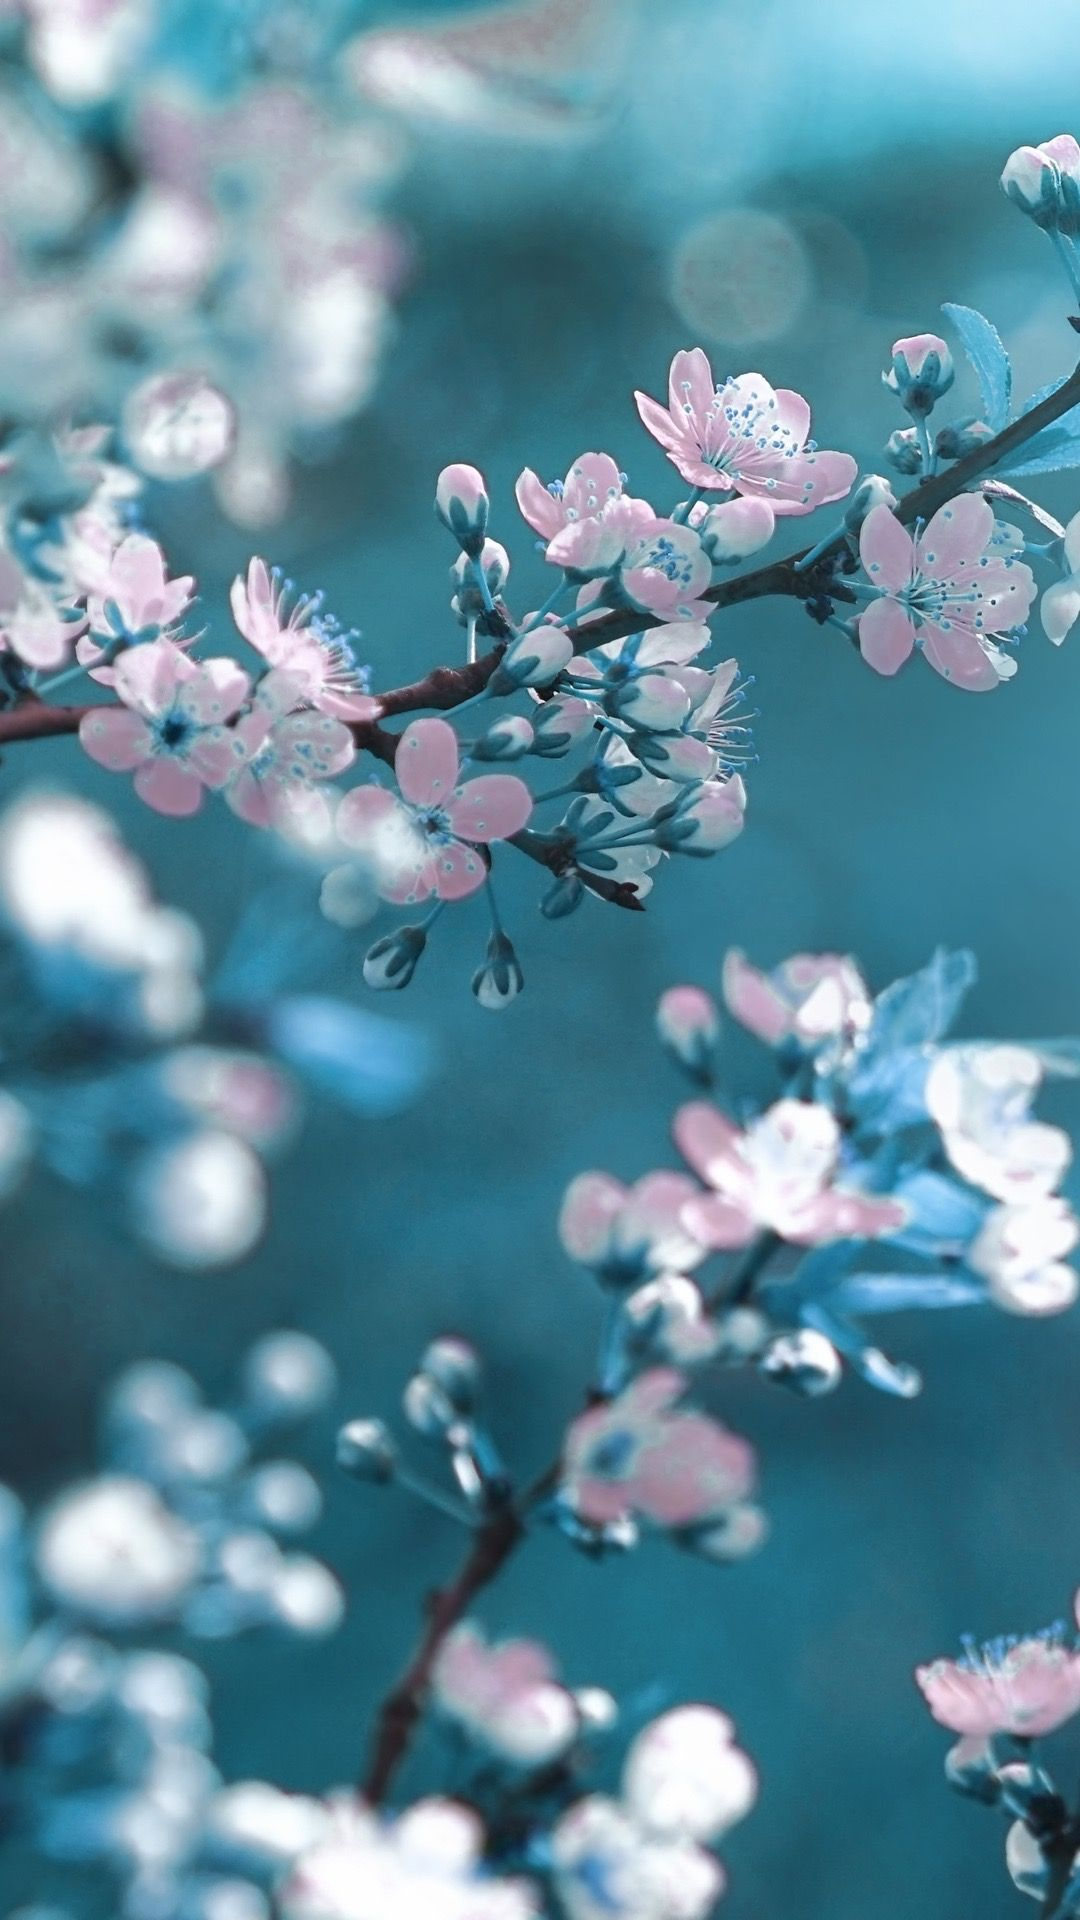 Pin By Pamela On Iwallpapers Spring Flowers Wallpaper Flower Background Wallpaper Floral Wallpaper Iphone